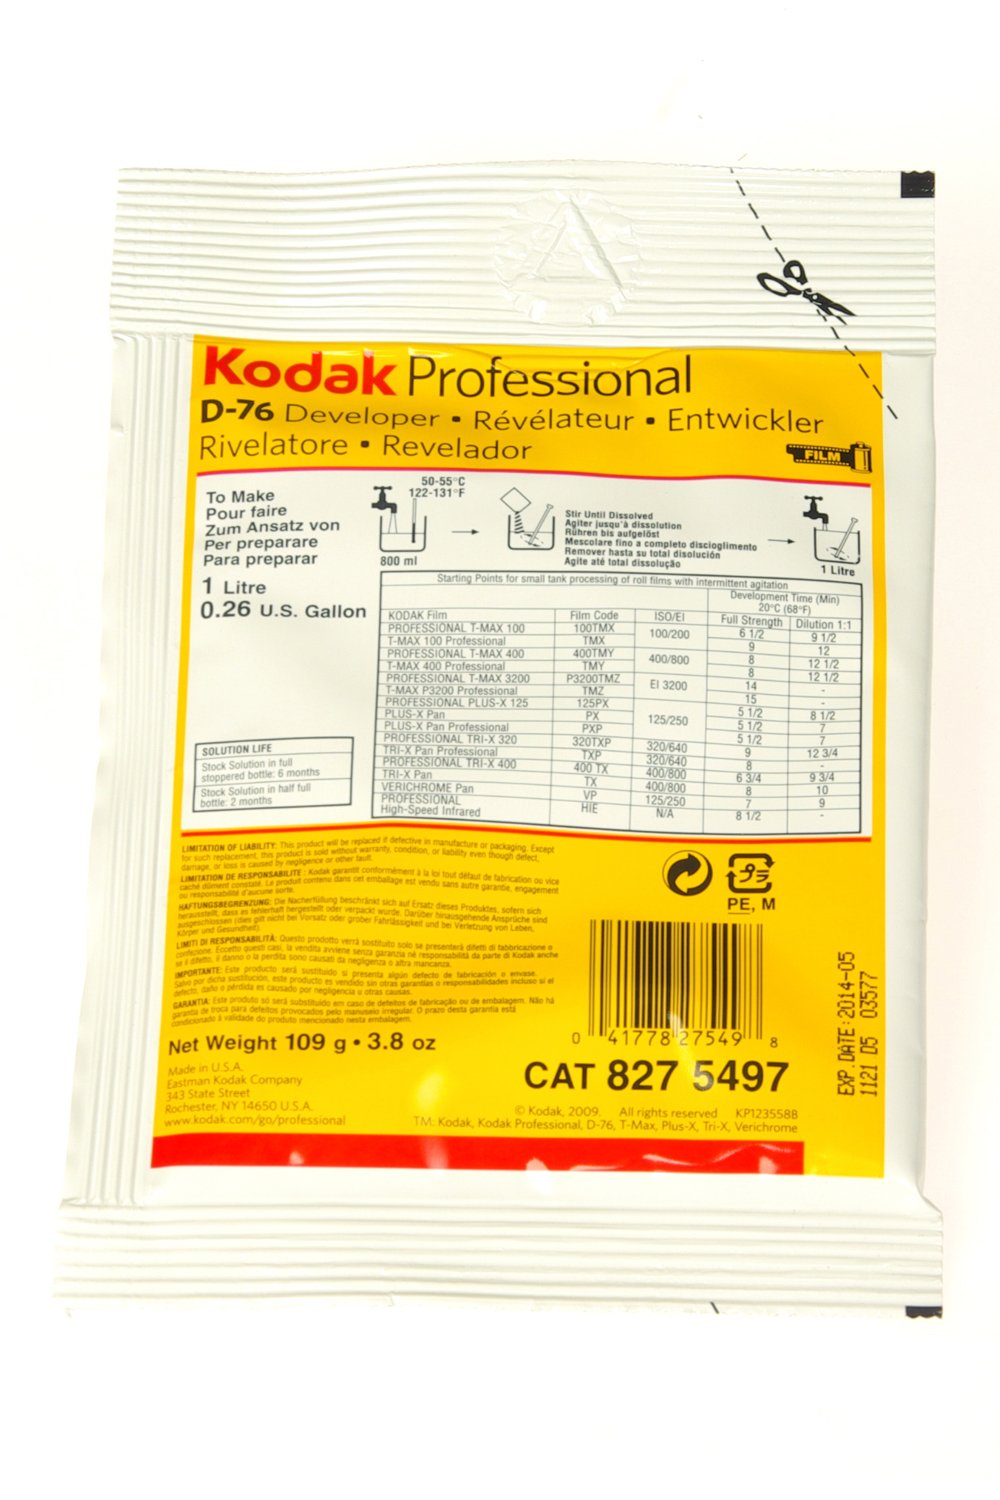 Kodak D76 Black and White Film Developing Powder to Make 1 Liter 8275497